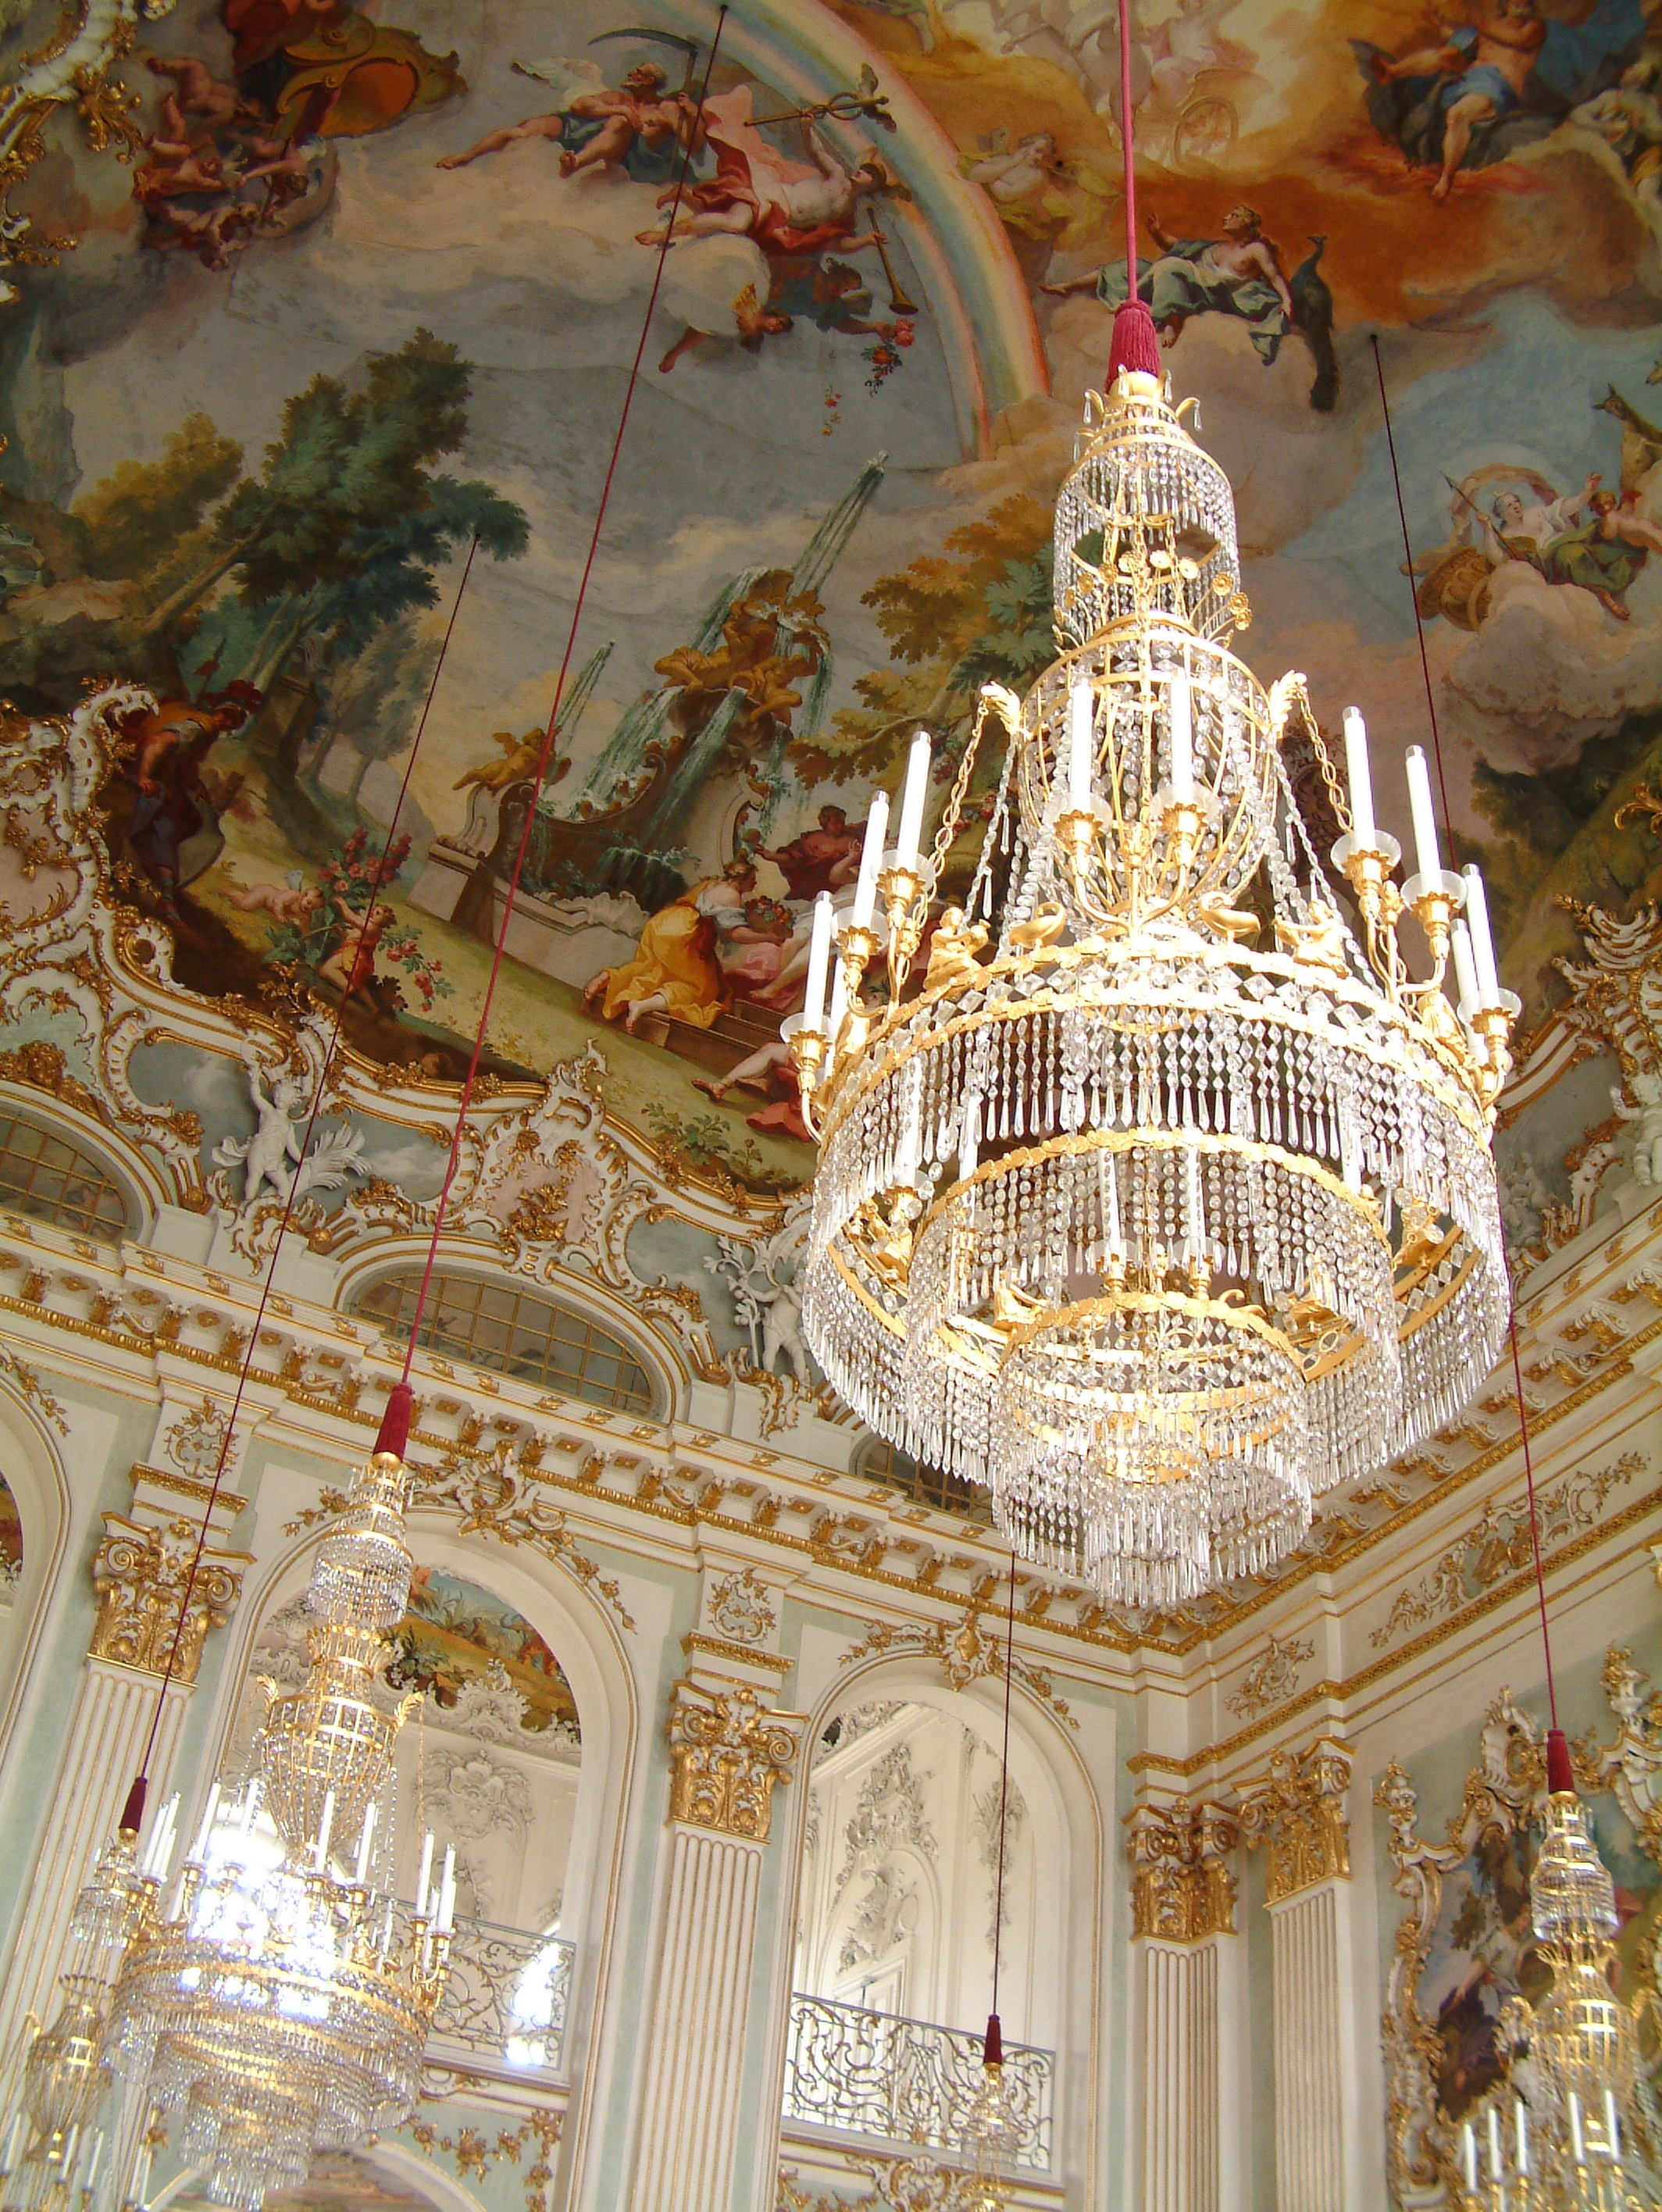 Ornate Chandeliers In The Nymphenburg Palace On The Outskirts Of Pertaining To Ornate Chandeliers (Image 11 of 15)